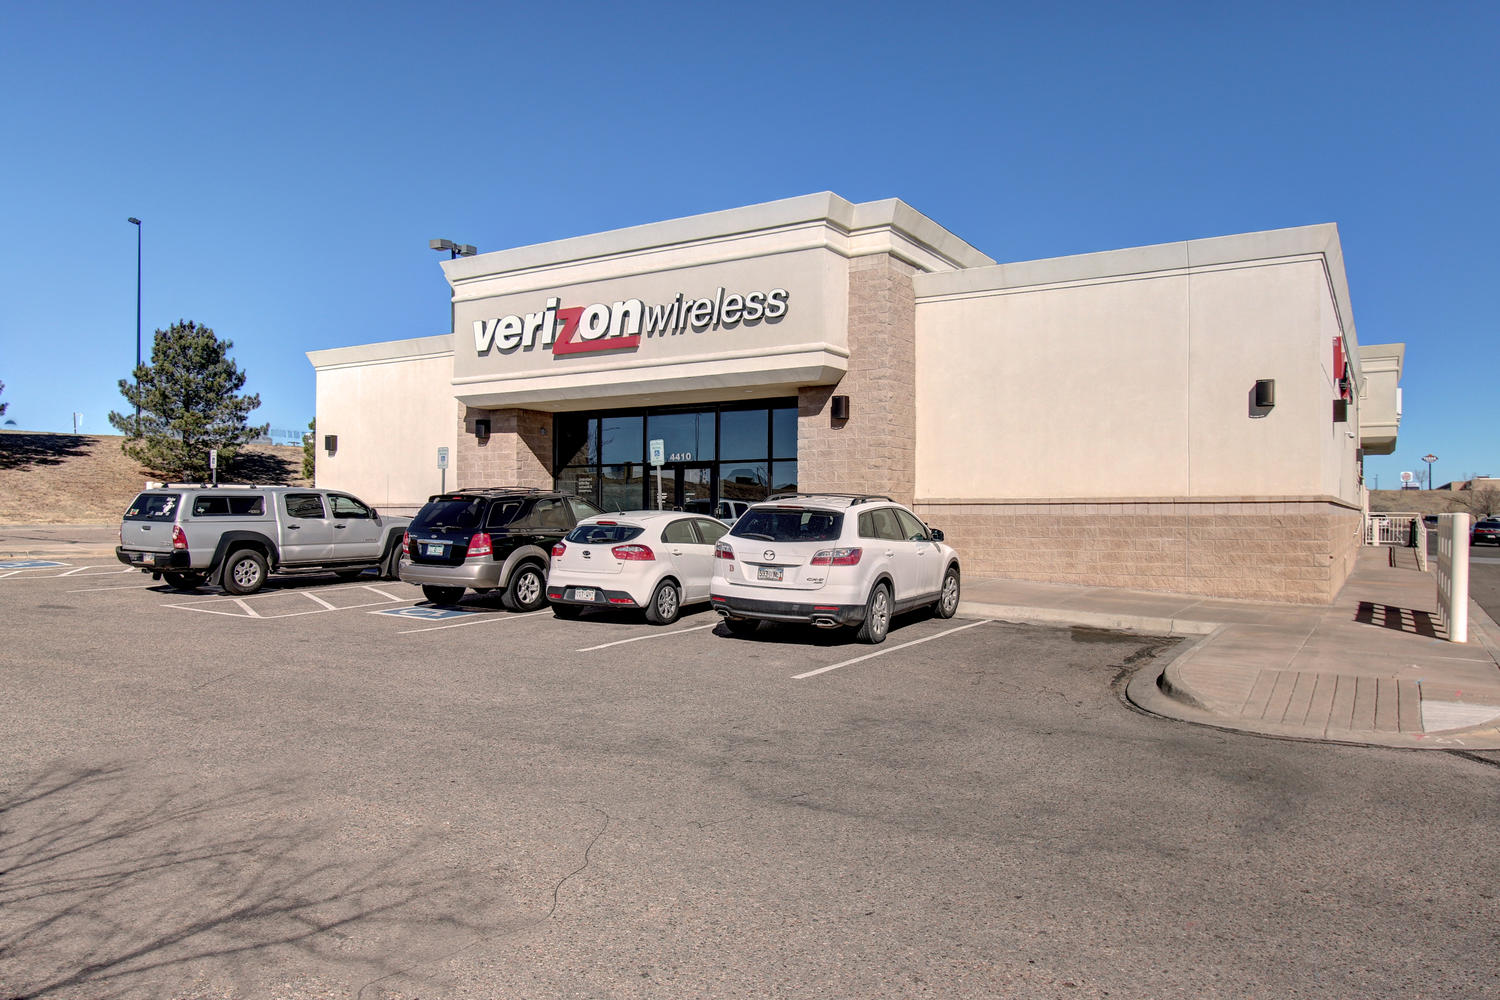 NavPoint Real Estate Group Sells 7,840 SF Retail Building in Pueblo for $2,620,000